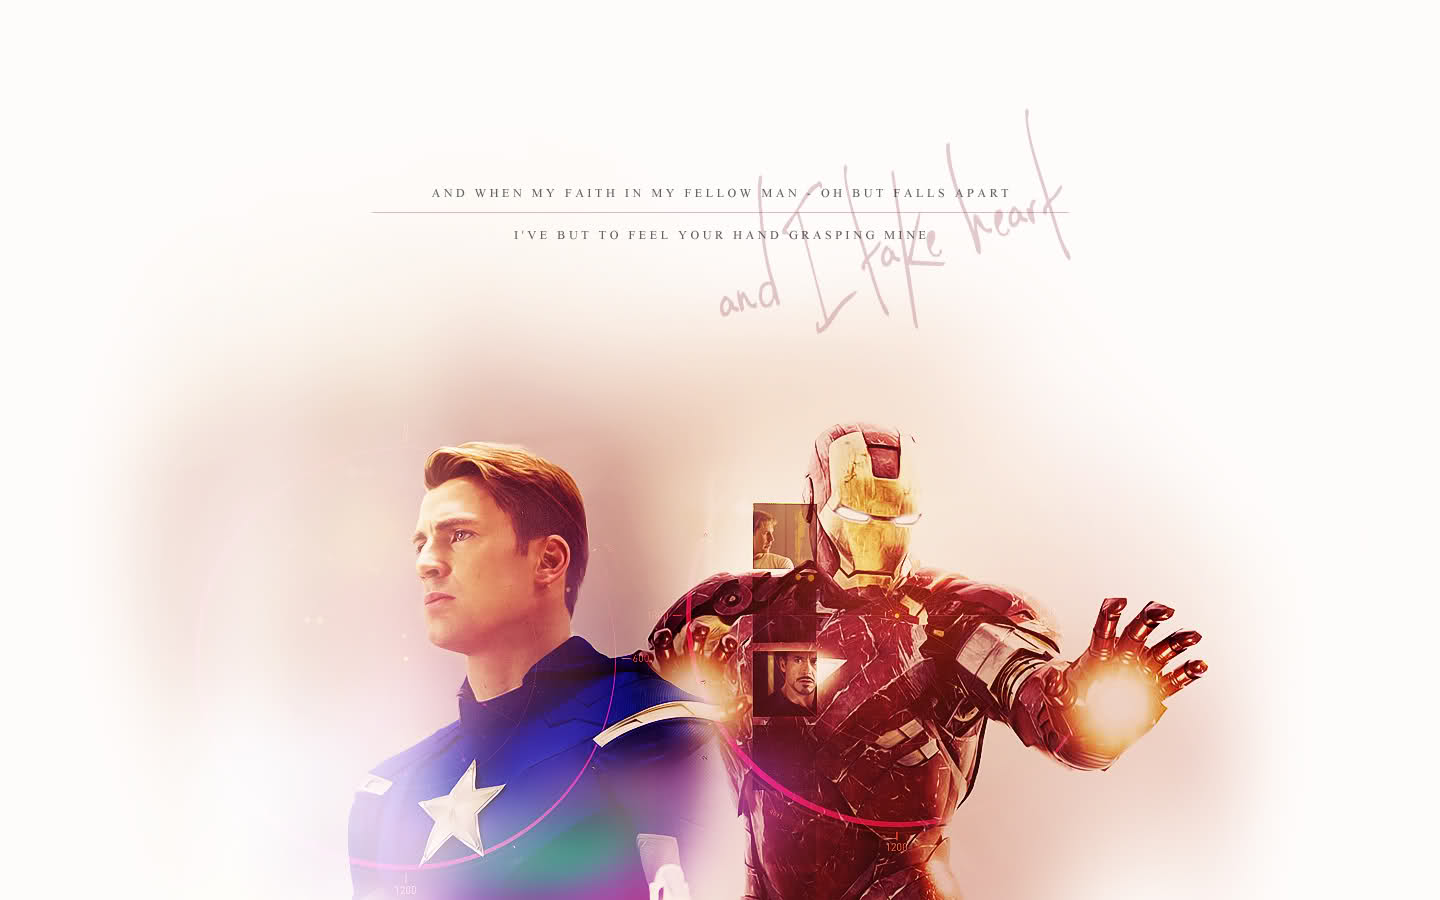 Steve and Tony images SteveTony Wallpaper HD wallpaper and background 1440x900